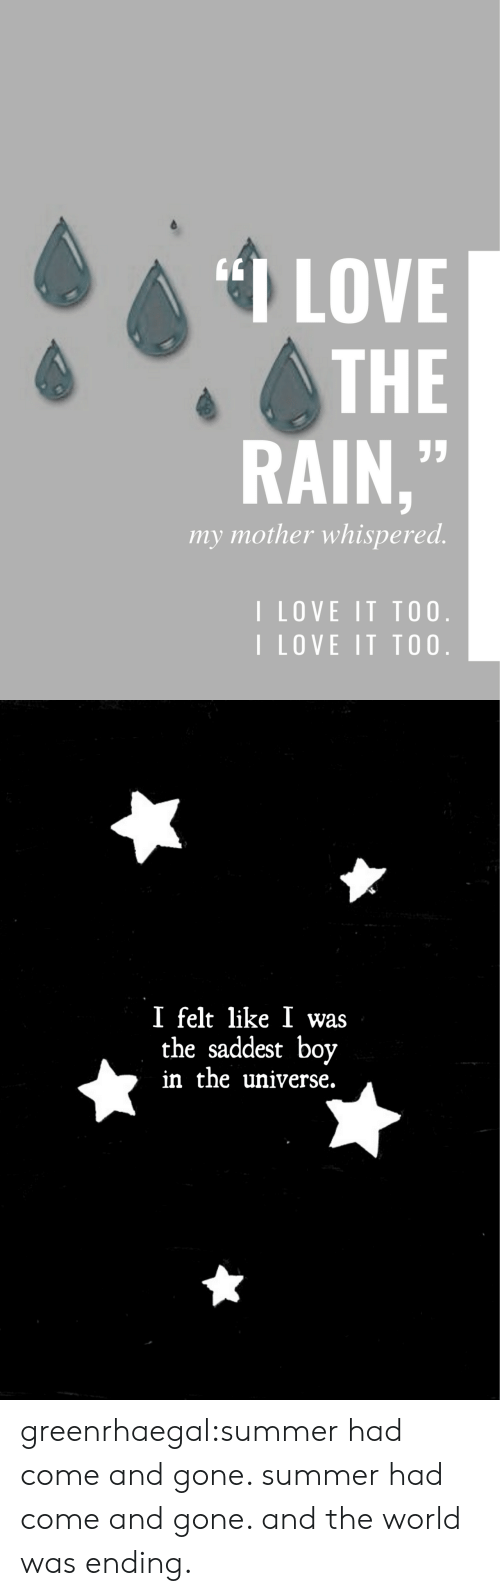 Love, Target, and Tumblr: LOVE  THE  RAIN,  my mother whispered.  I LOVE IT TO0.  I LOVE IT TO0   I felt like 1 was  the saddest boy  in the universe. greenrhaegal:summer had come and gone. summer had come and gone. and the world was ending.